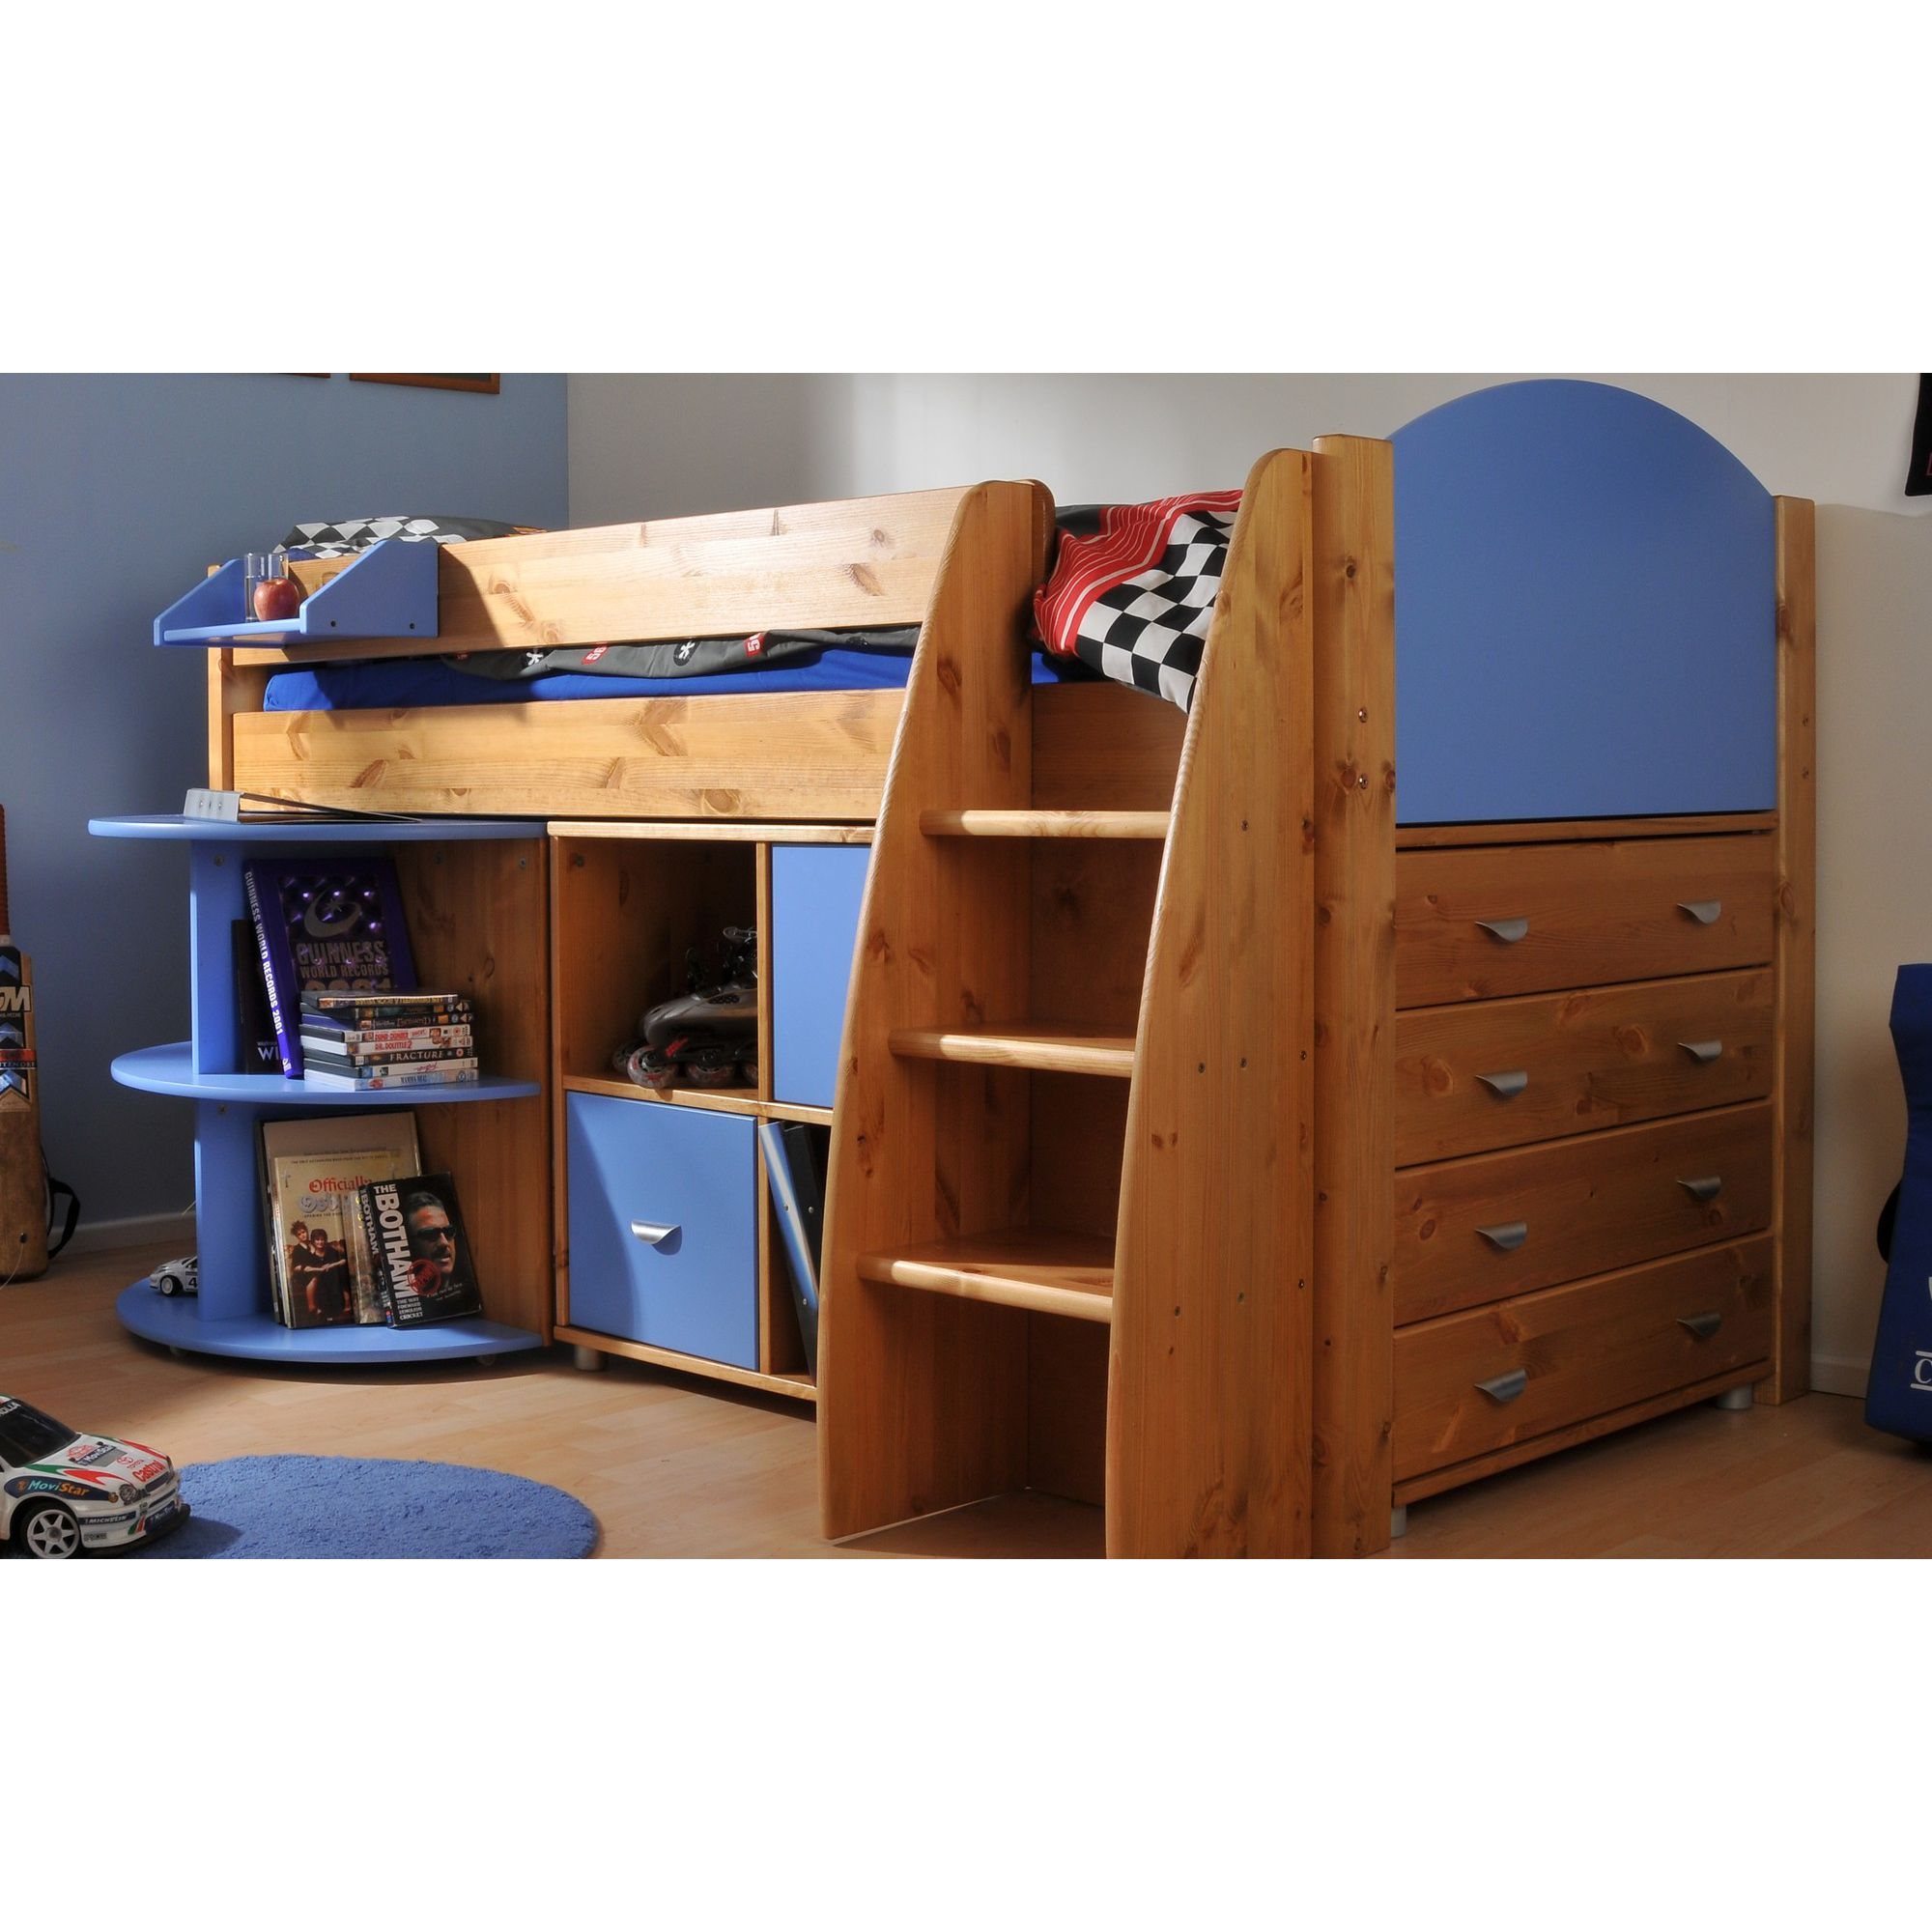 Stompa Rondo Mid Sleeper with 4 Drawer Chest, Cube Unit and Extending Desk - Antique - Blue at Tesco Direct